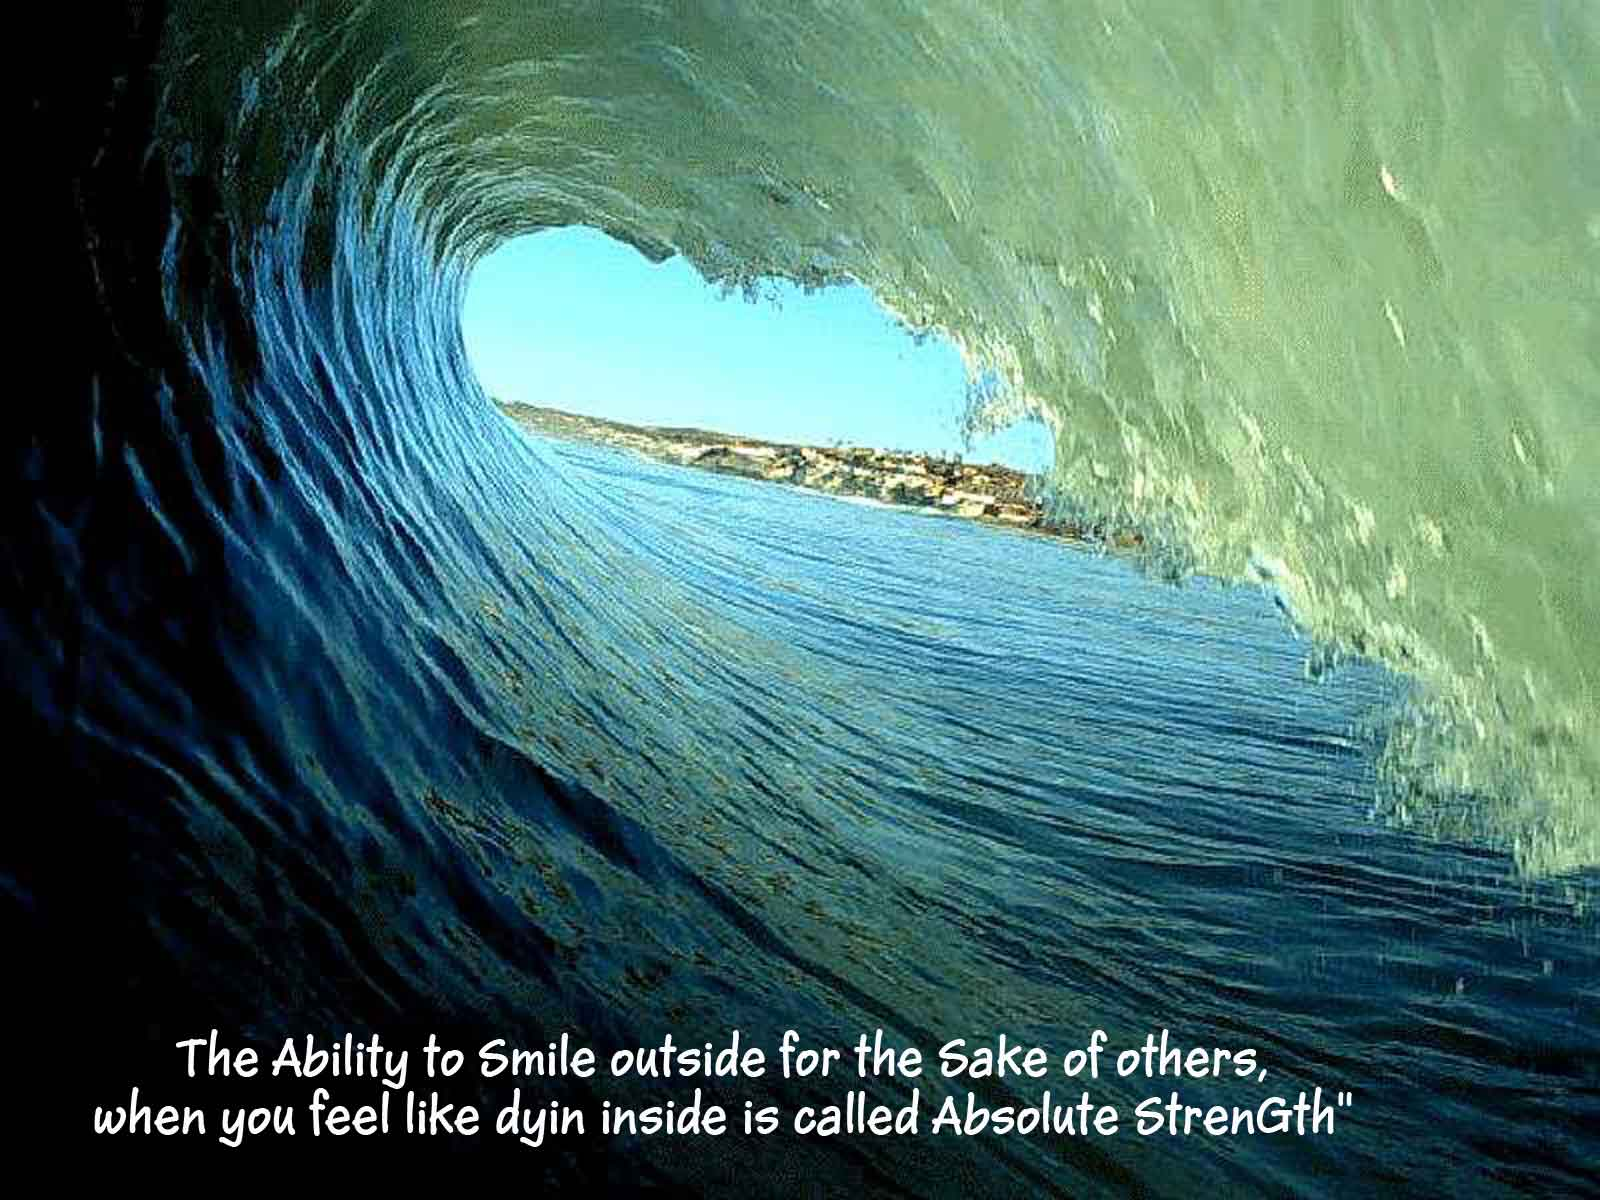 The Ability to Smile outside for the Sake of others